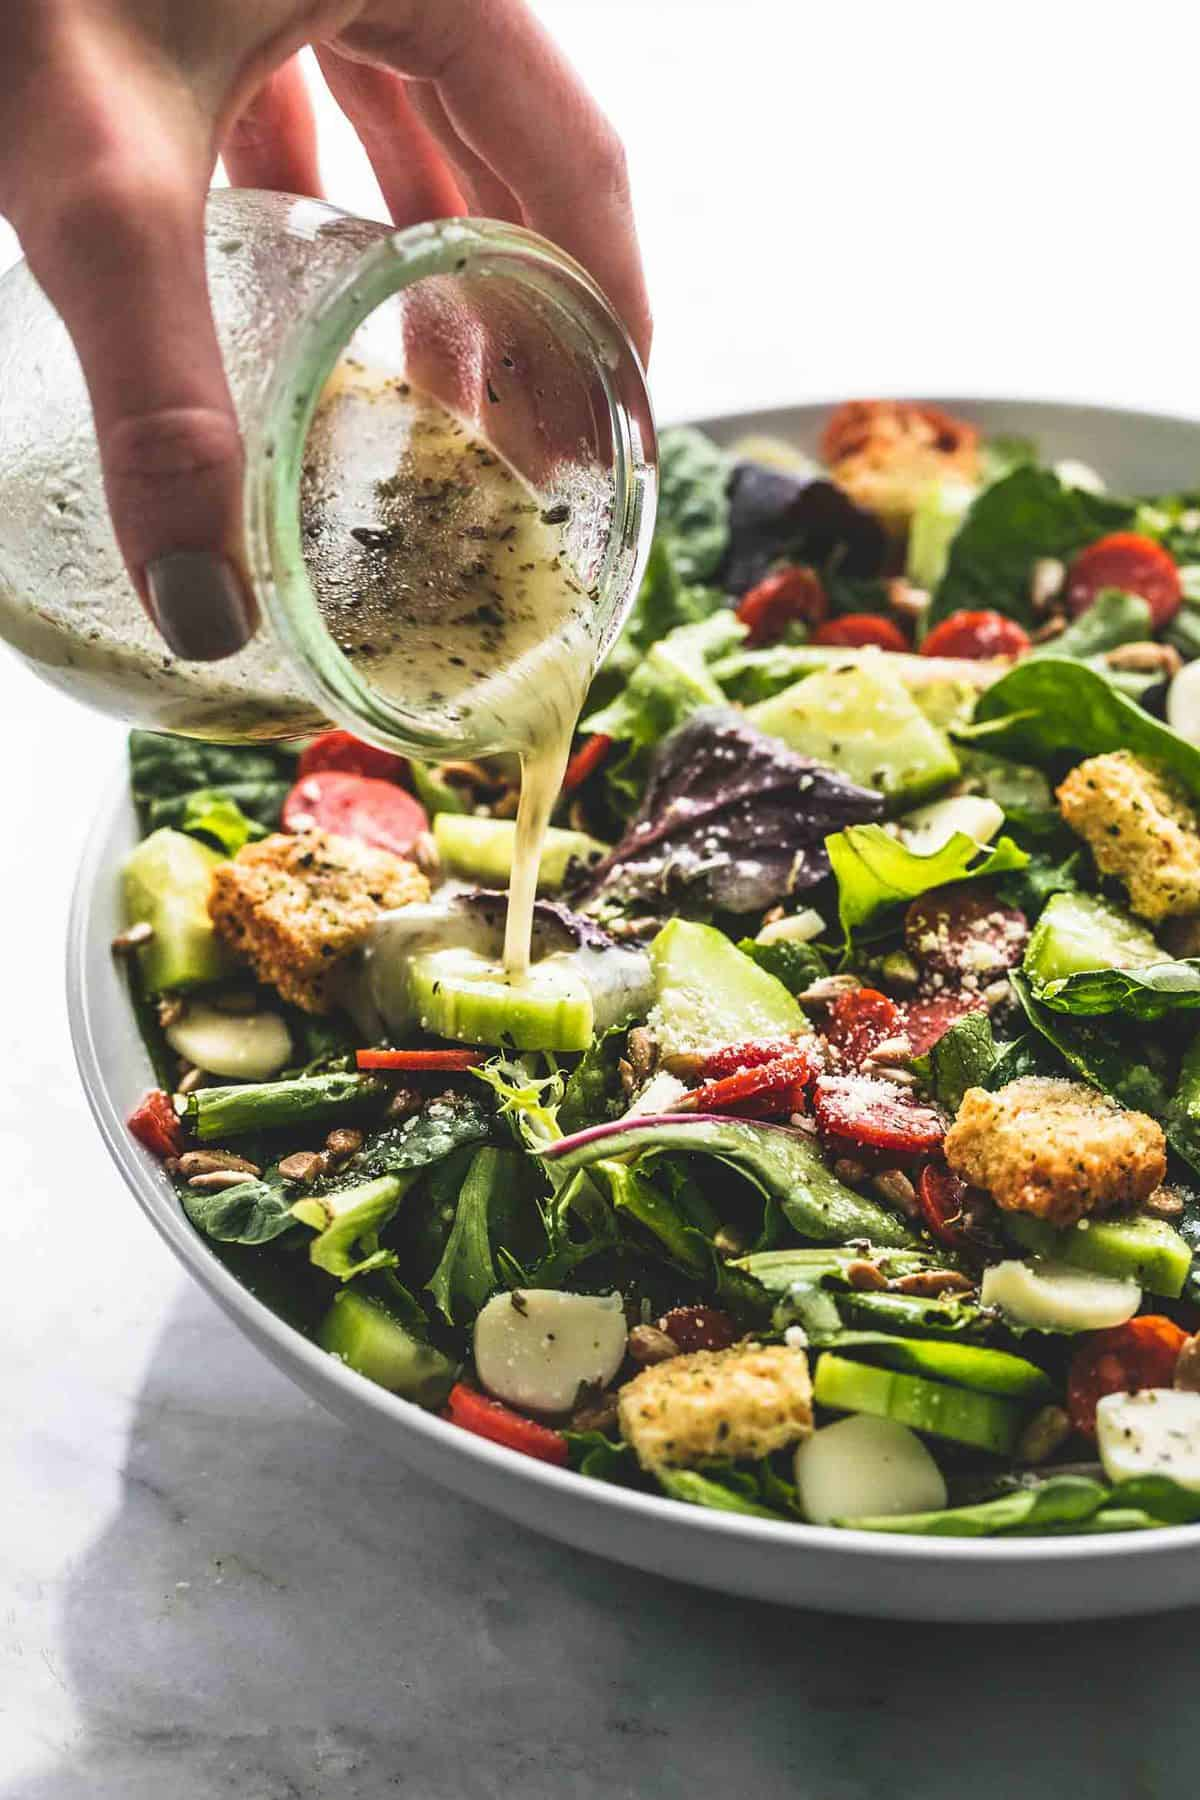 a hand pouring a jar of dressing on top of Italian green salad in a bowl.